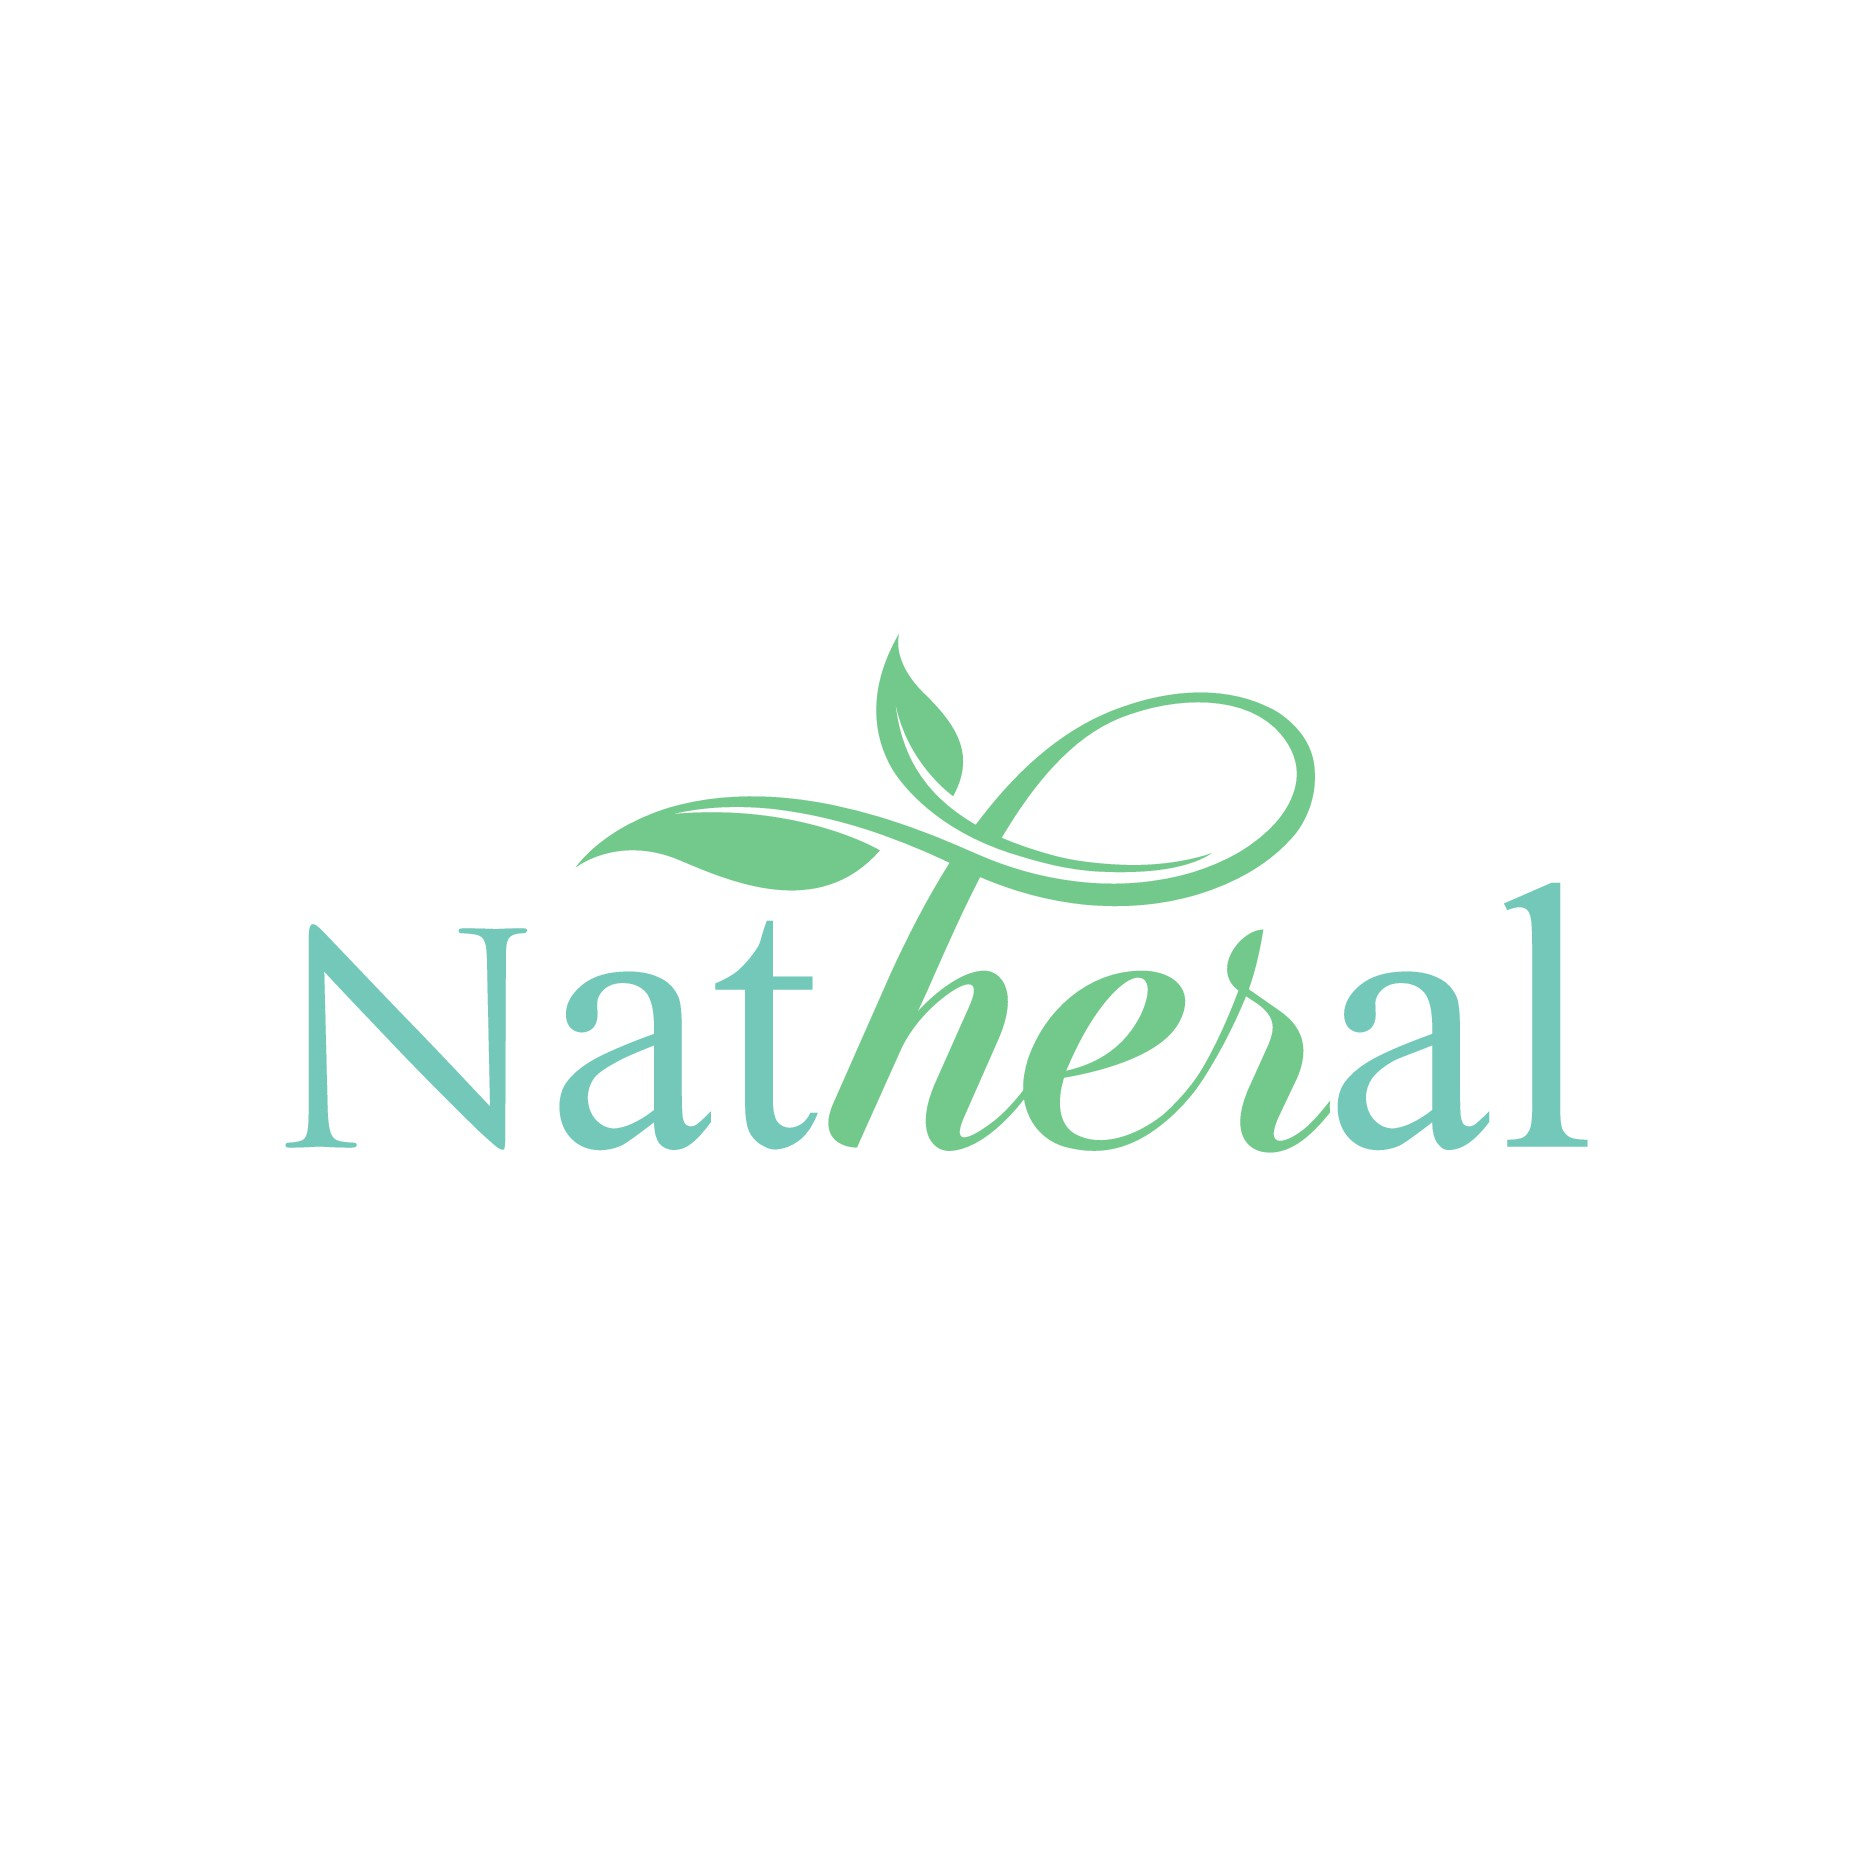 Branding launch, natural products. Starting my own business